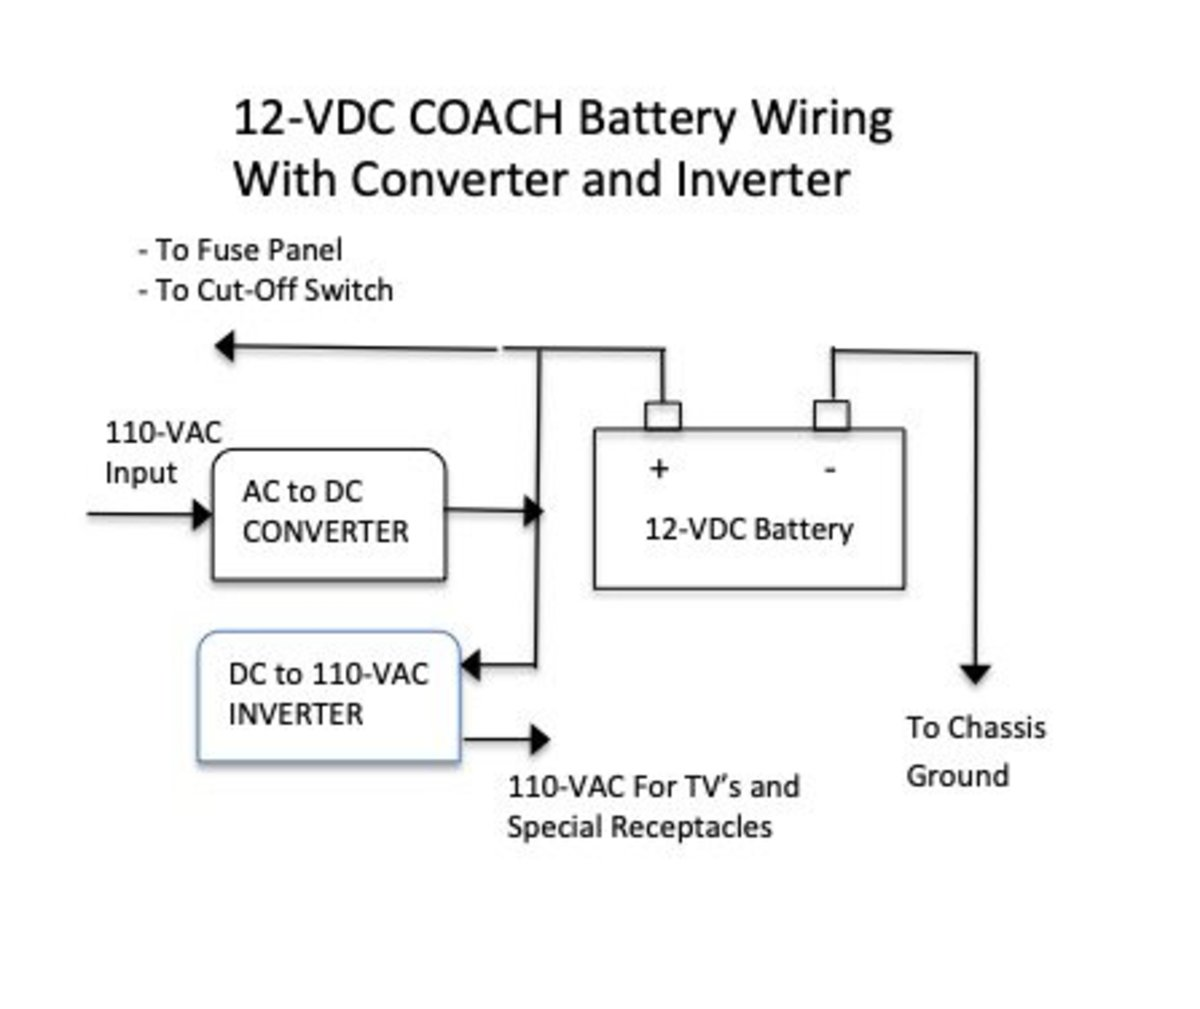 RV Inverters and Converters: How They Keep Your Camper Equipment Functioning